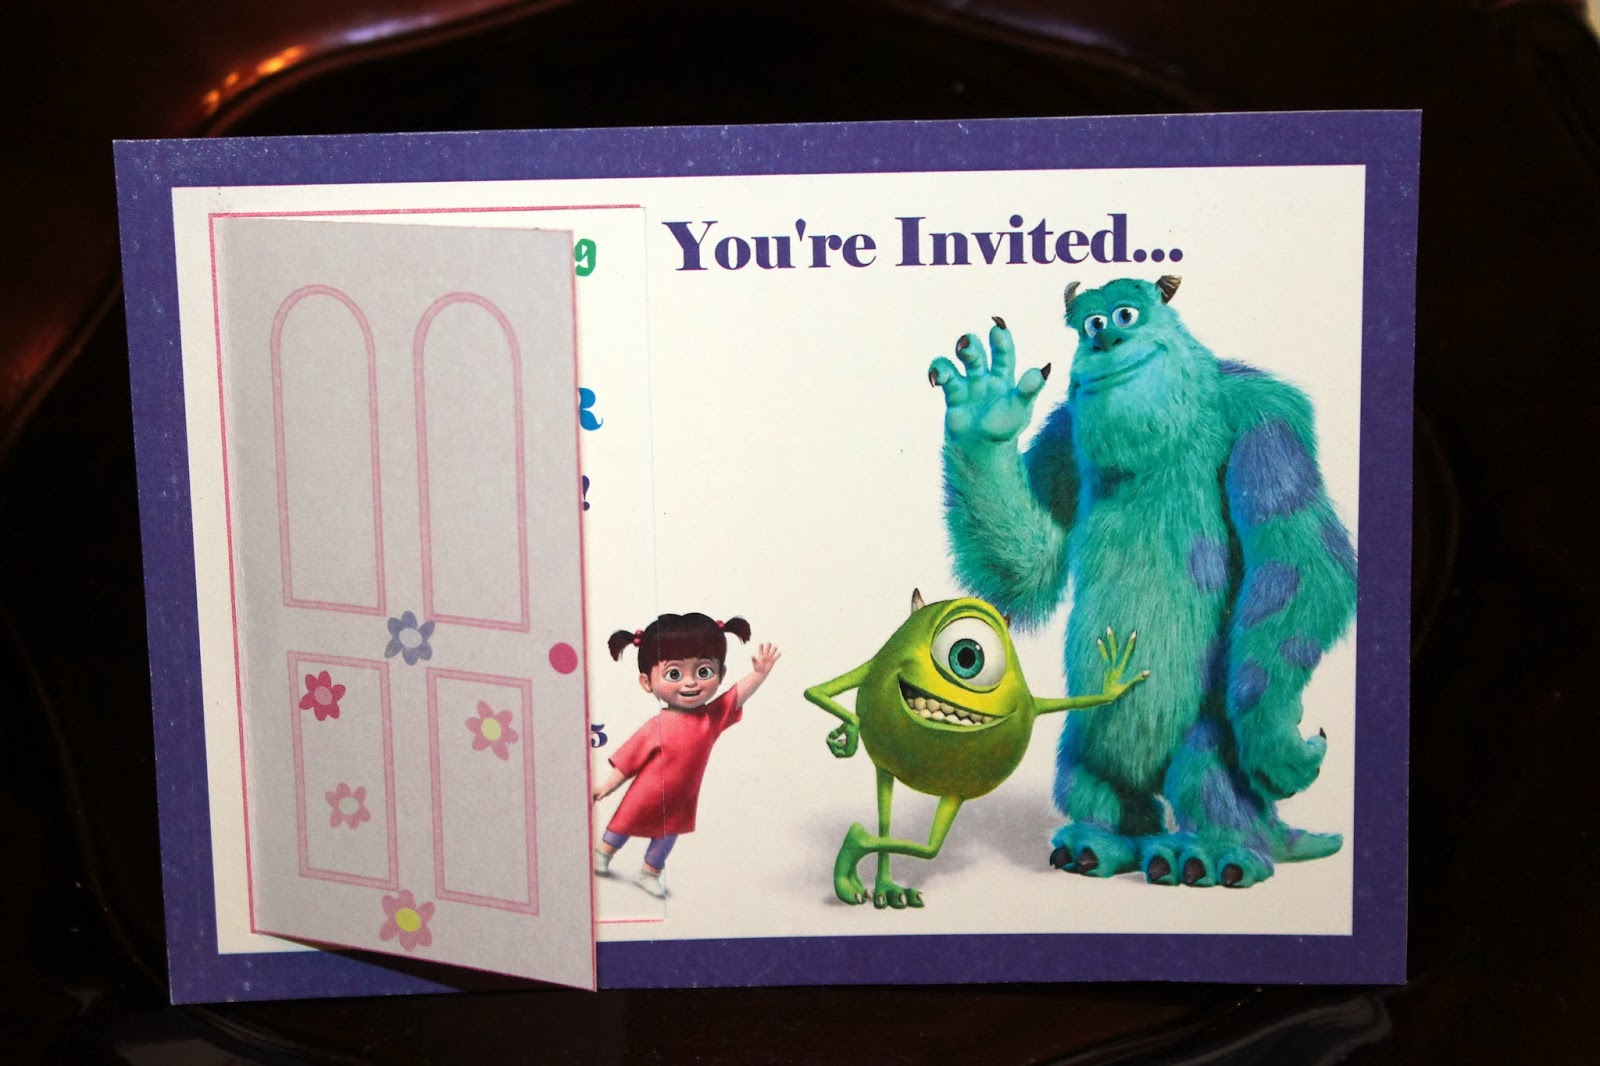 Come Party With The Monsters From Inc